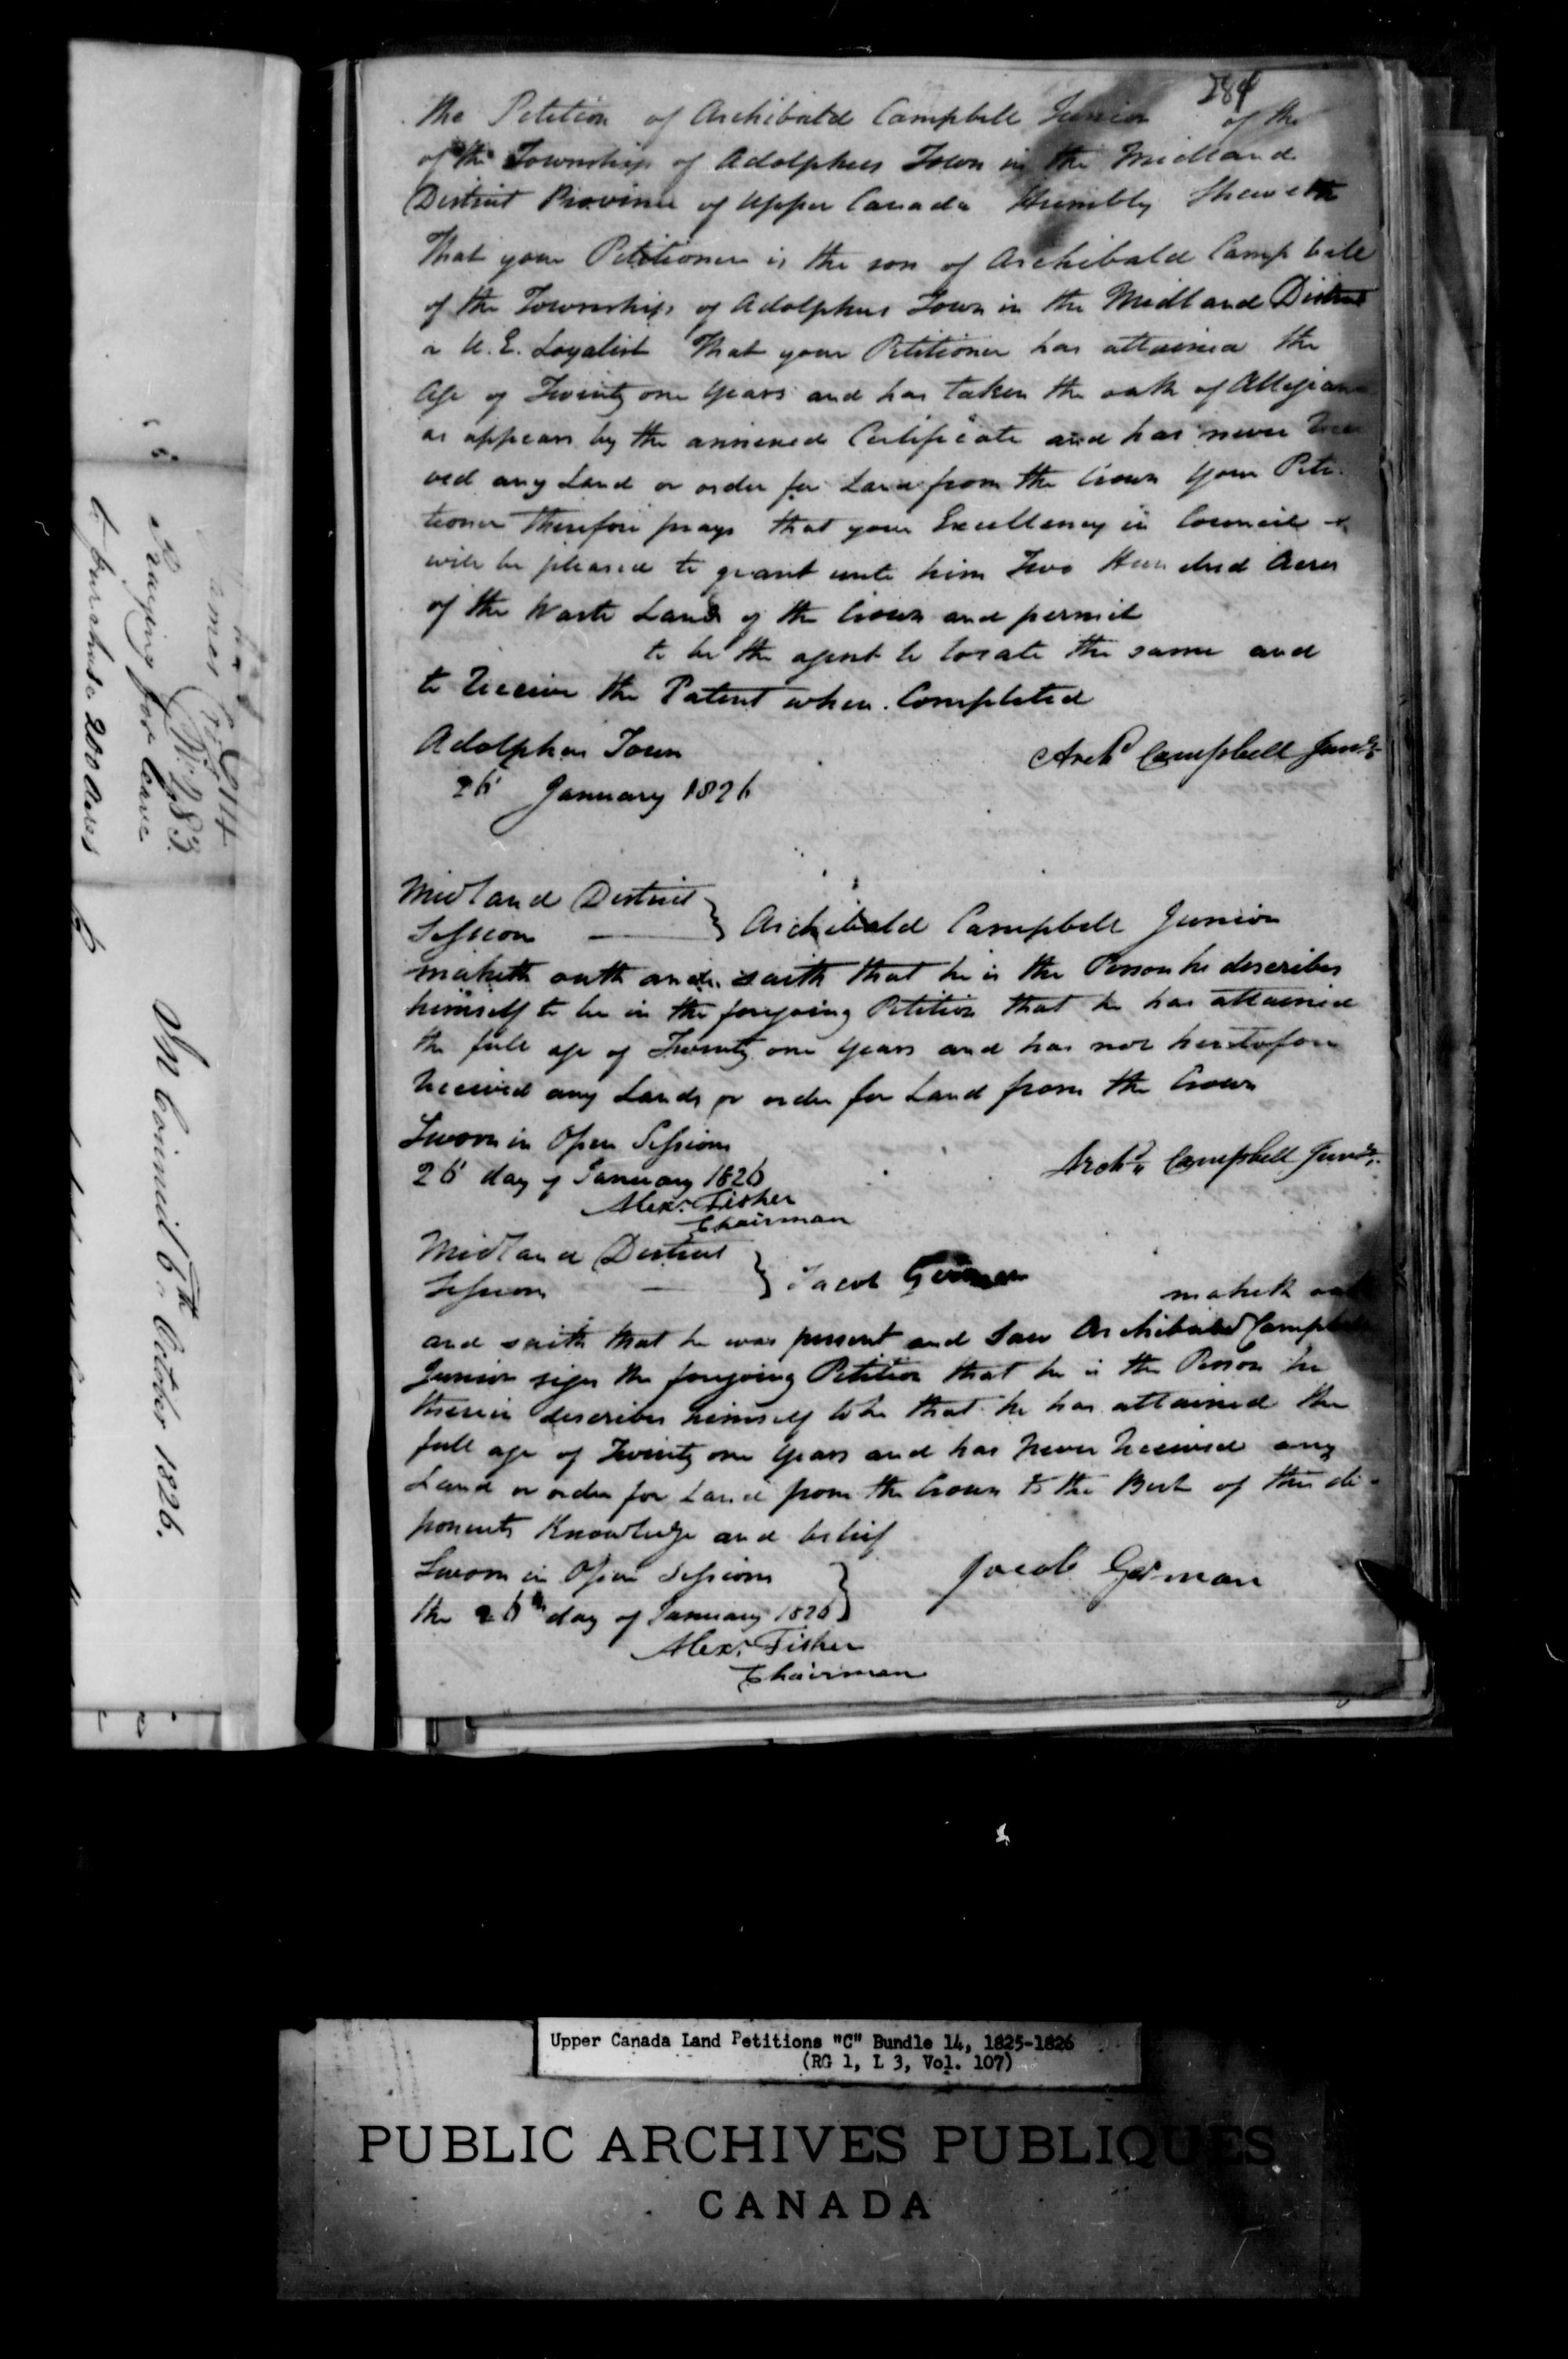 Title: Upper Canada Land Petitions (1763-1865) - Mikan Number: 205131 - Microform: c-1725